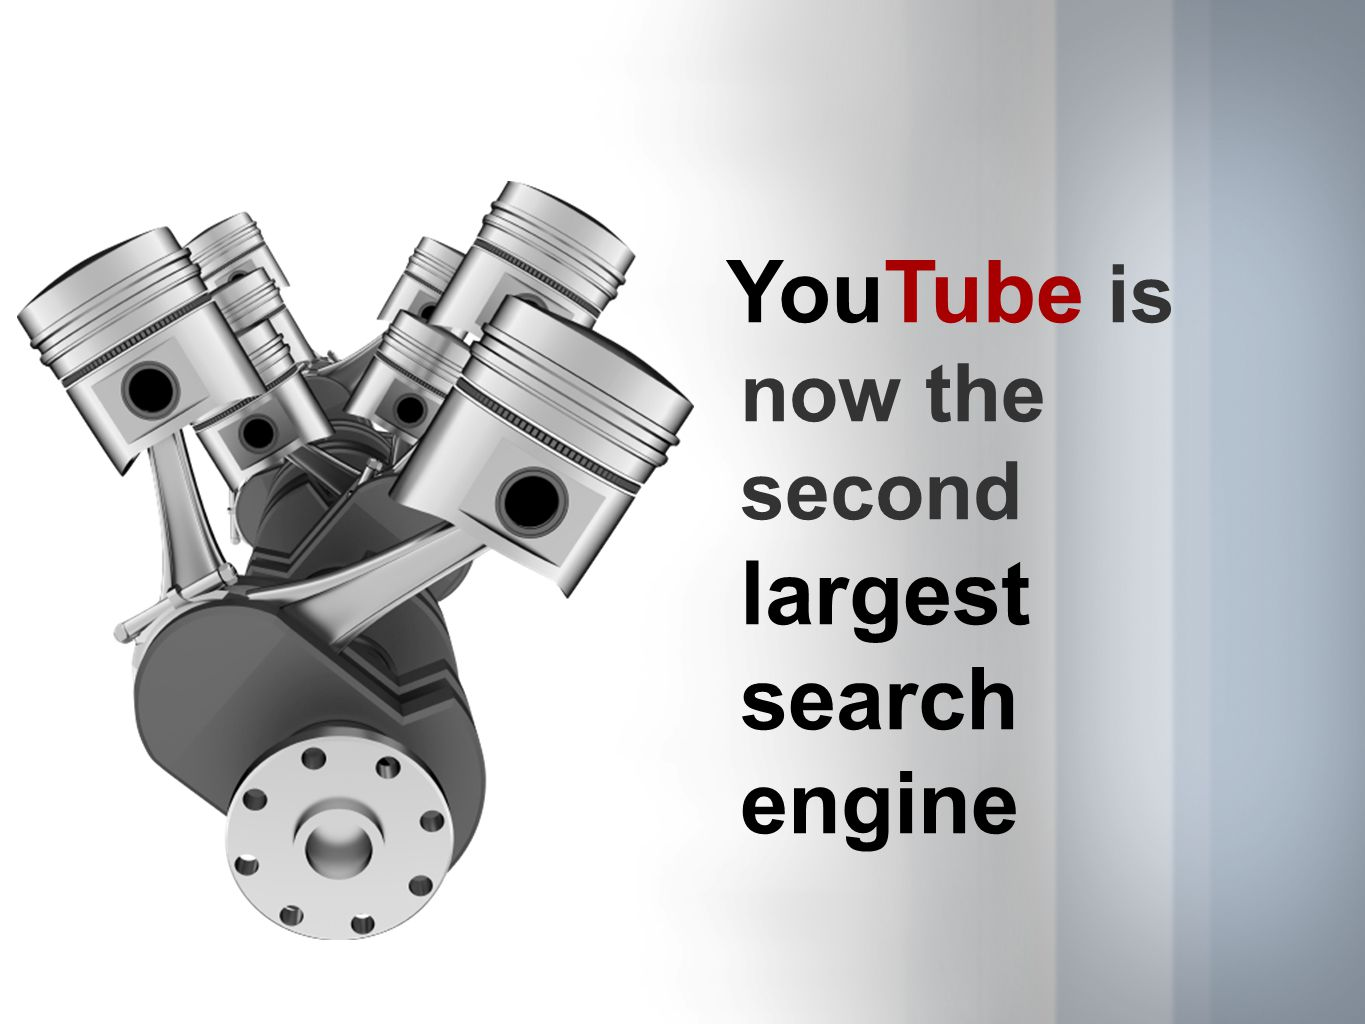 YouTube is now the second largest search engine